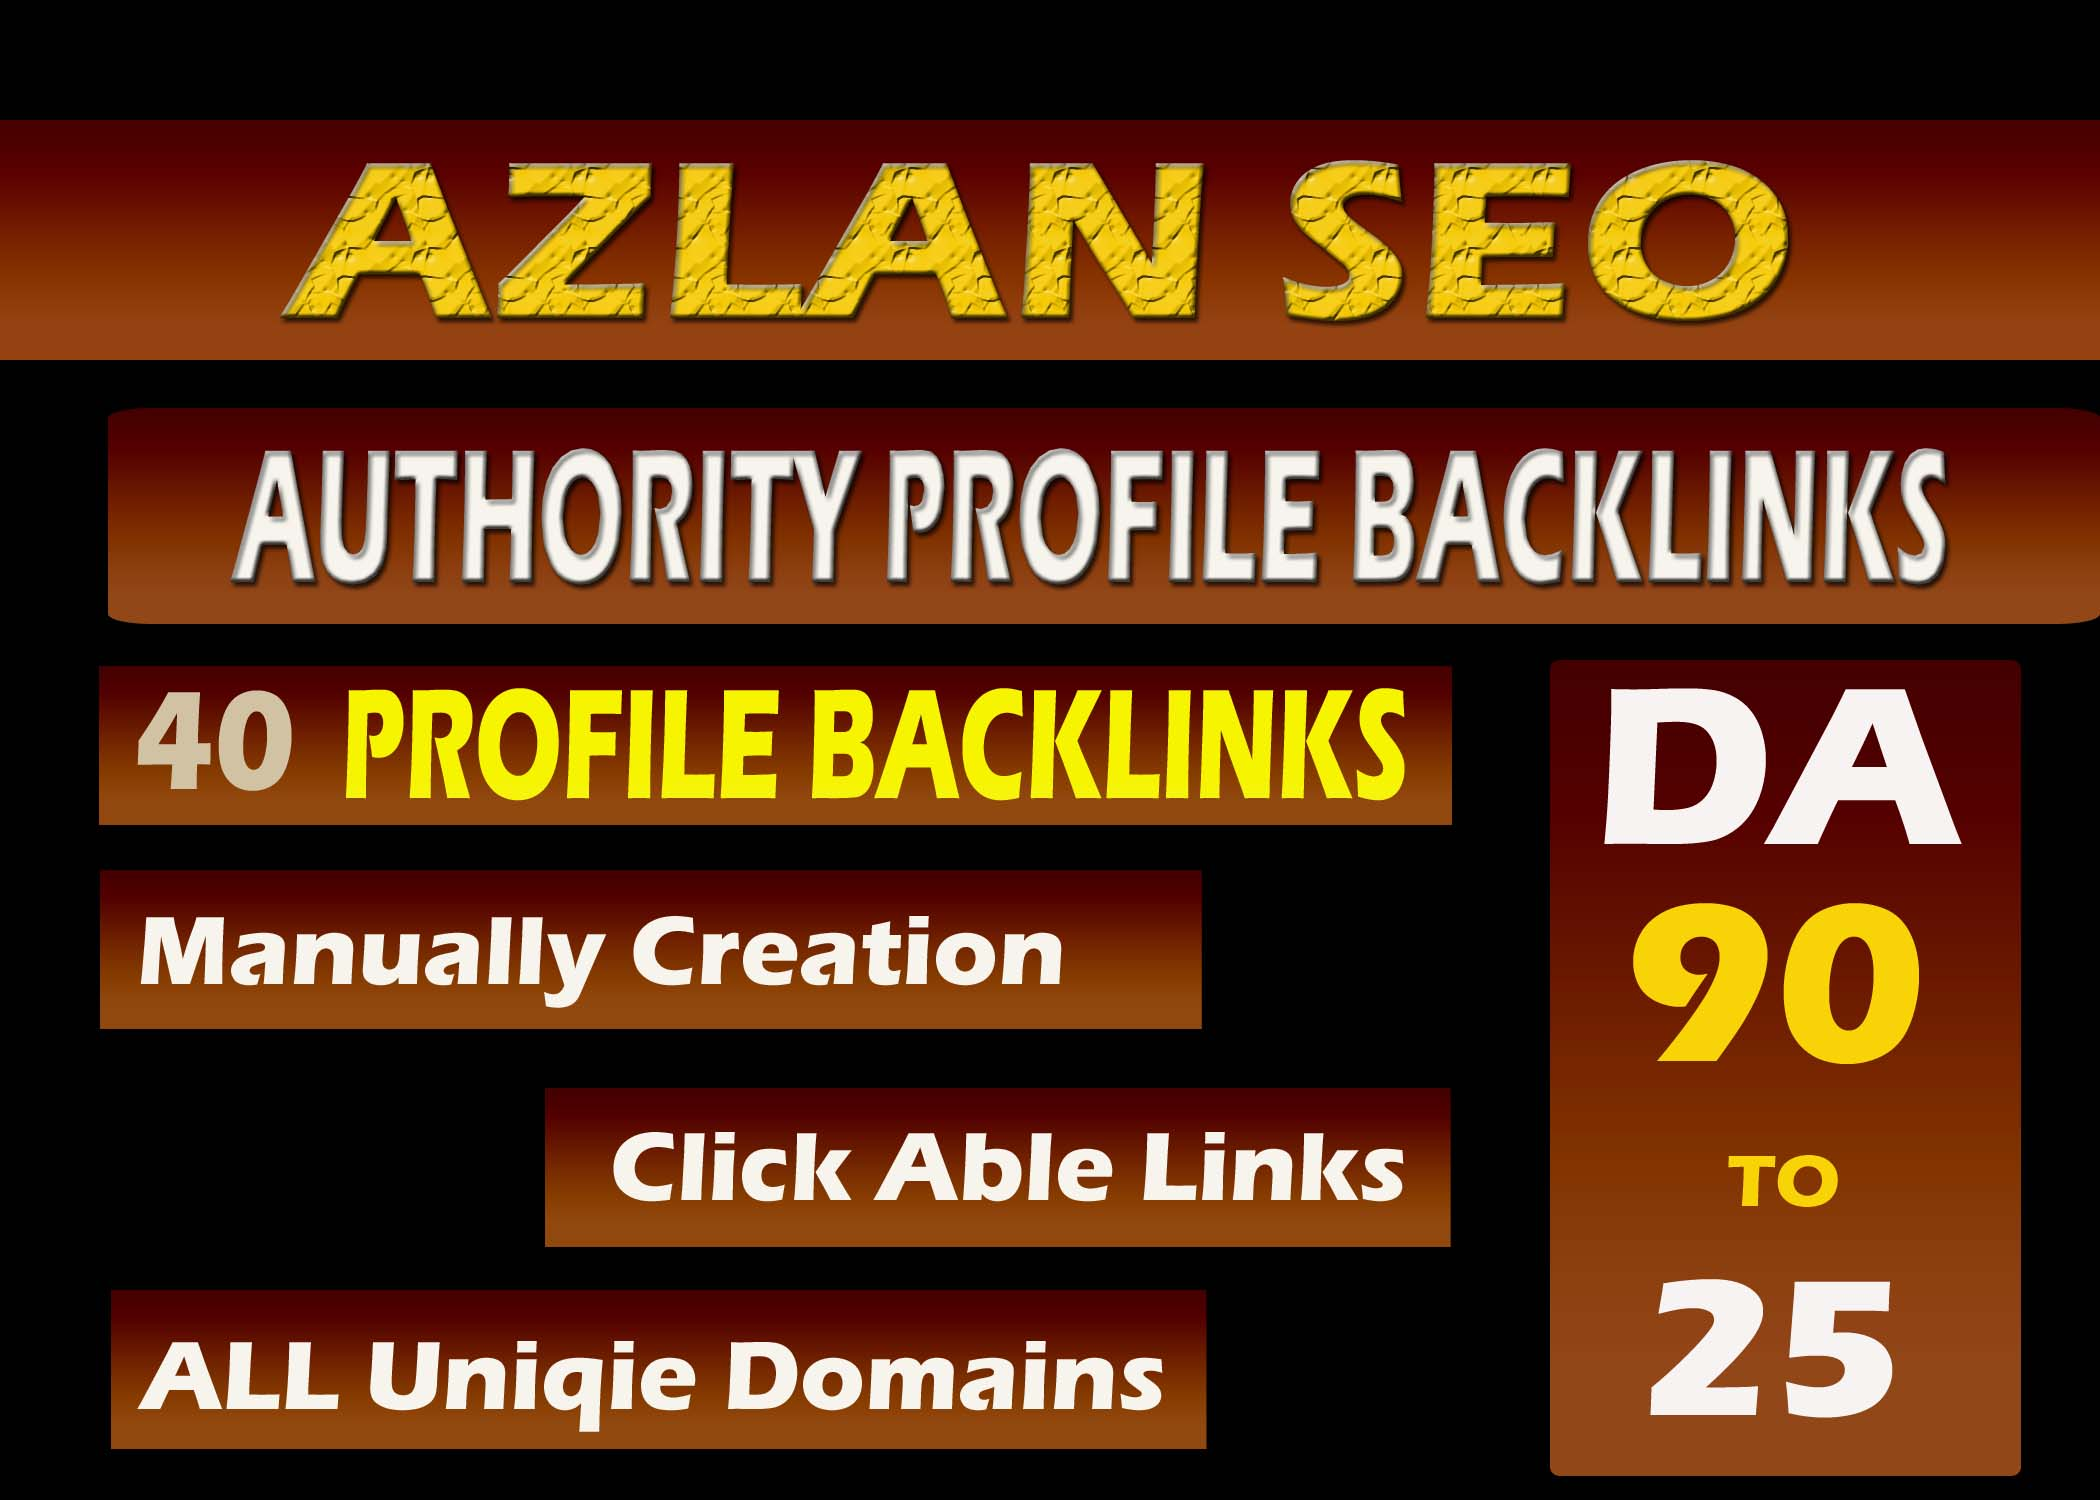 Create 40 high DA profile backlinks for your website